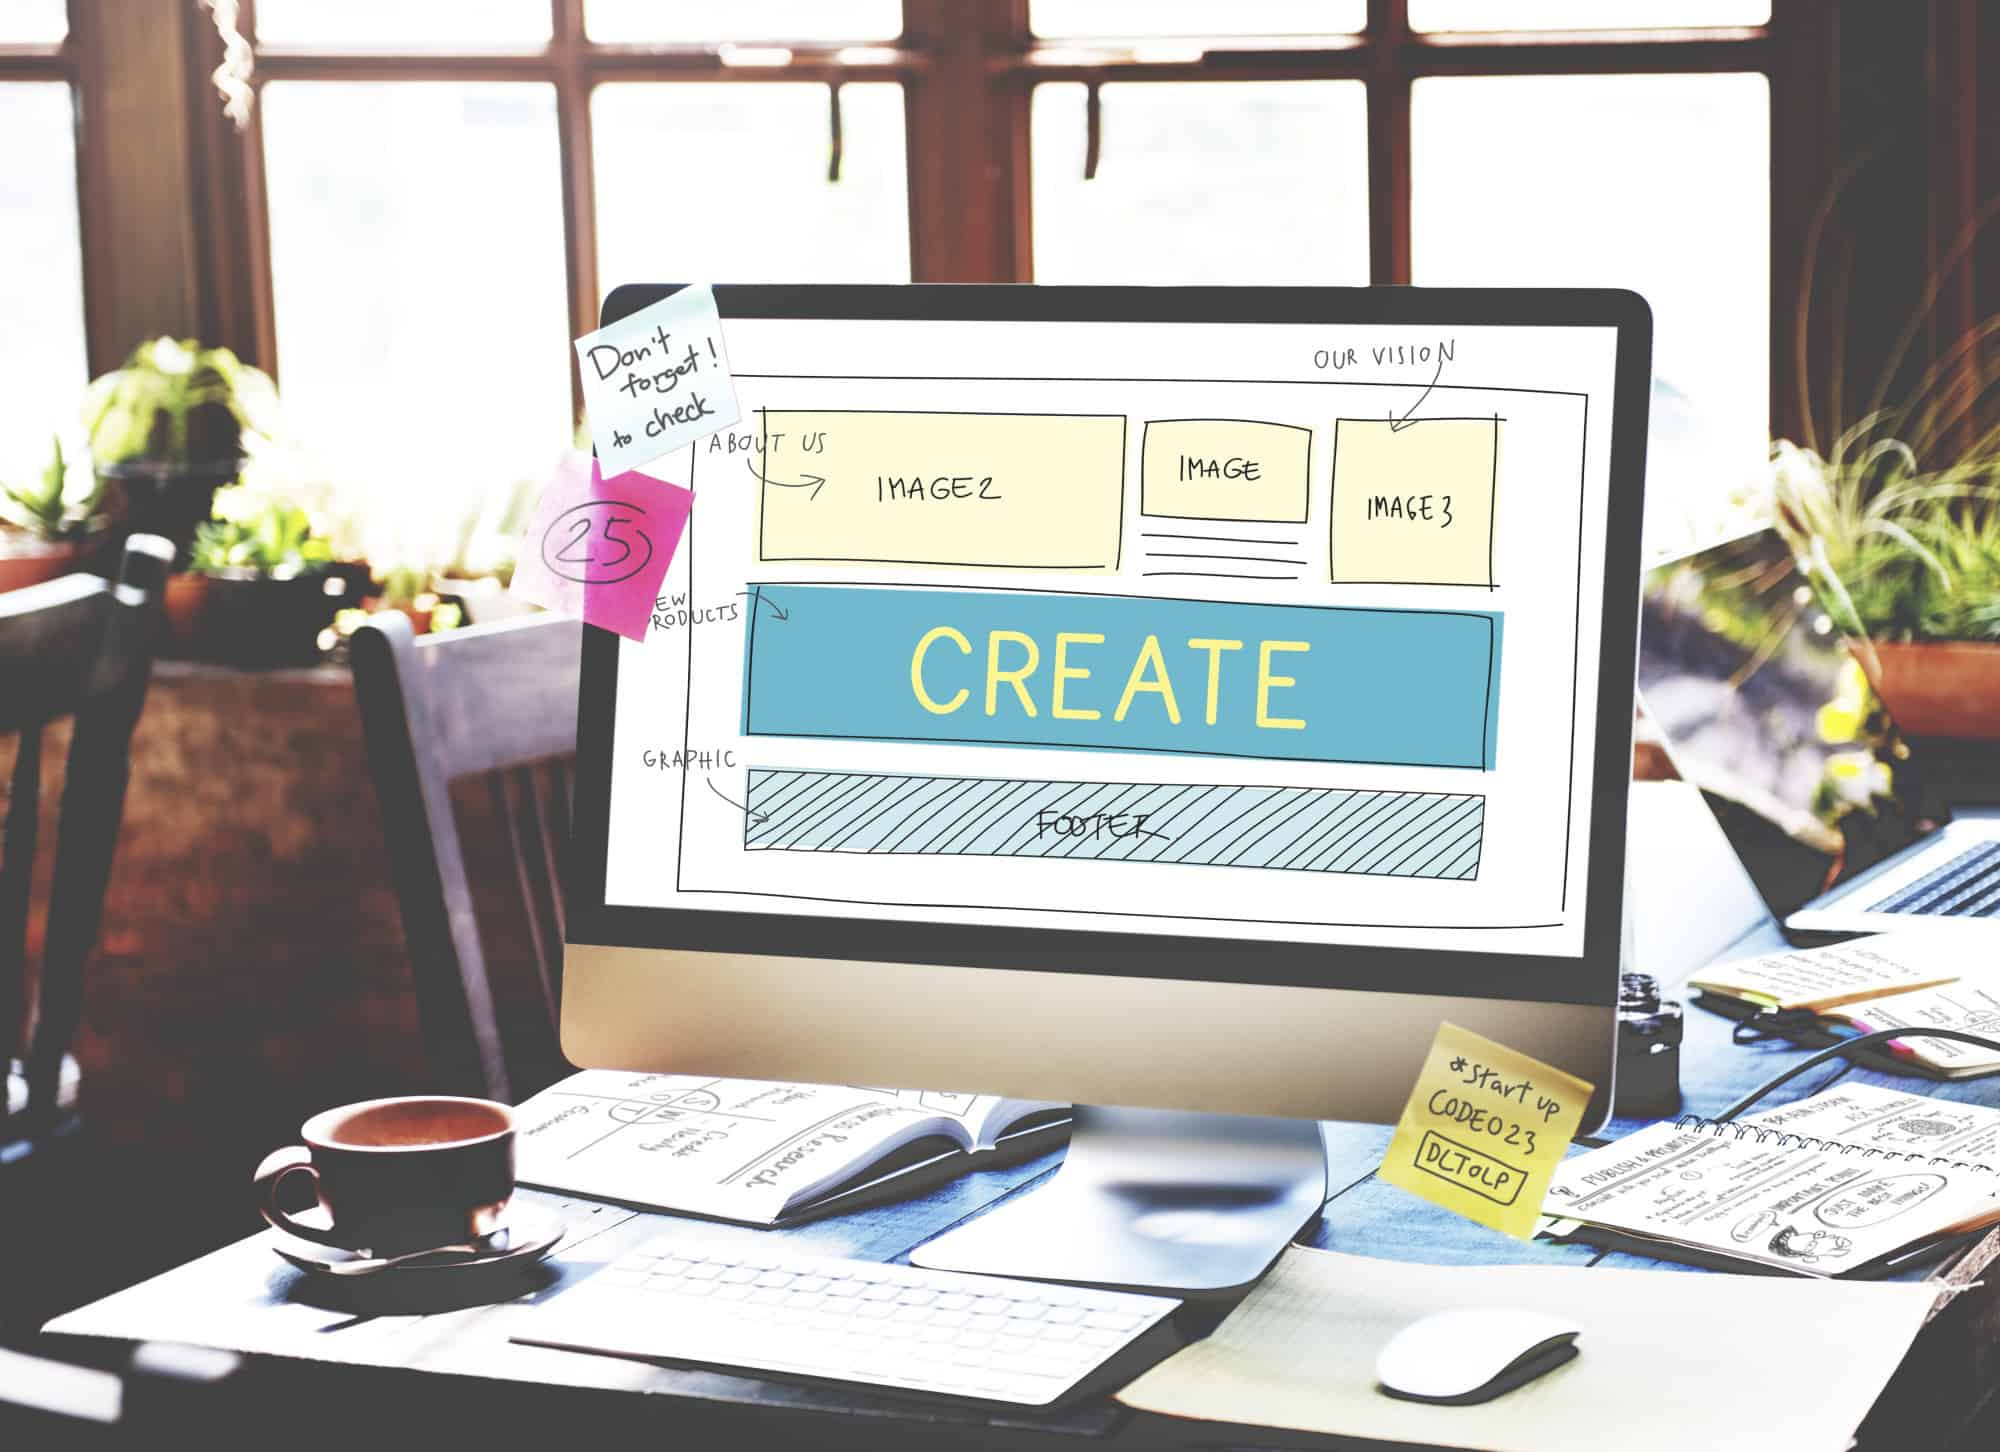 7 Undeniable Benefits of Hiring a Web Design Agency